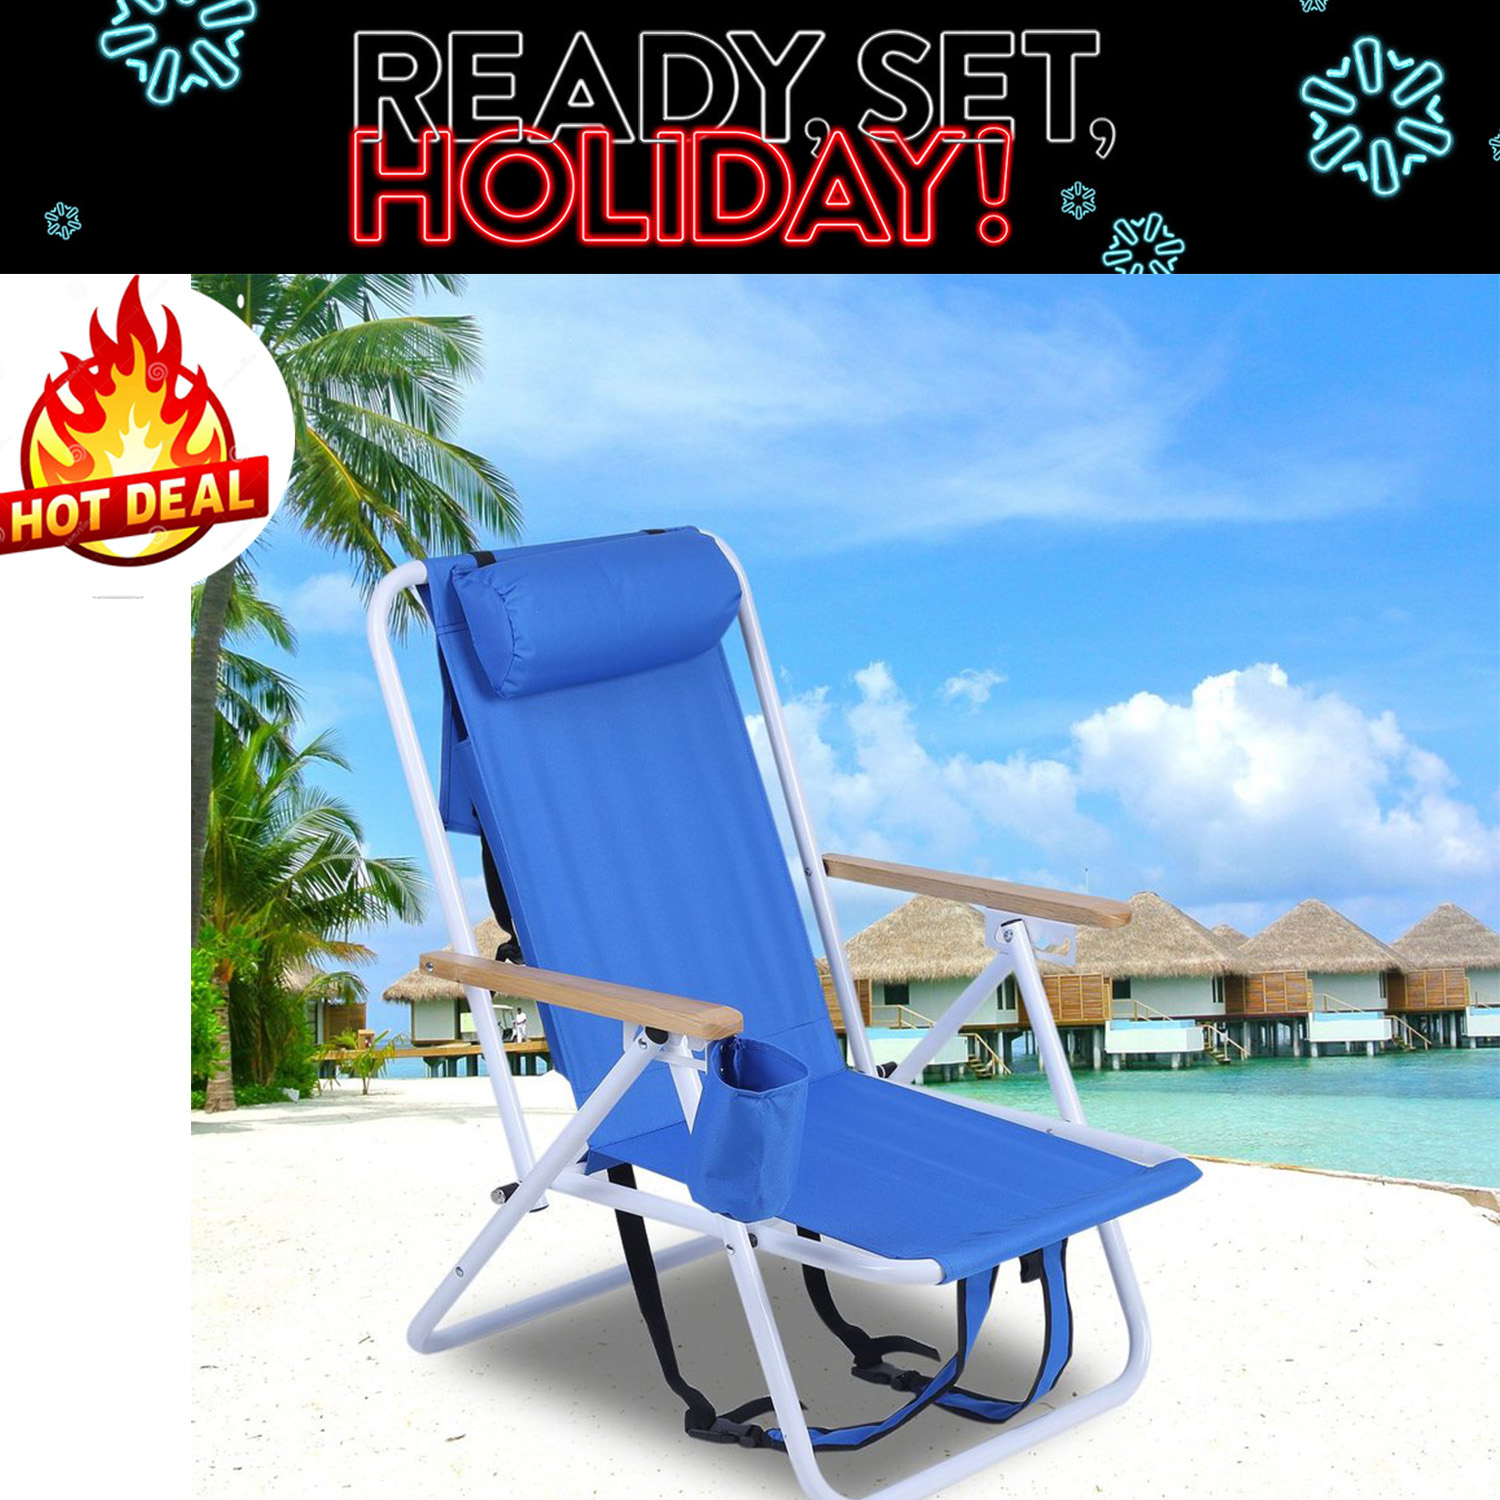 Folding Chairs For Outdoors Folding Backpack Beach Chair With Cup Holder Portable 600D Polyester Fabric Chair Adjustable Outdoor Furniture(One Piece)